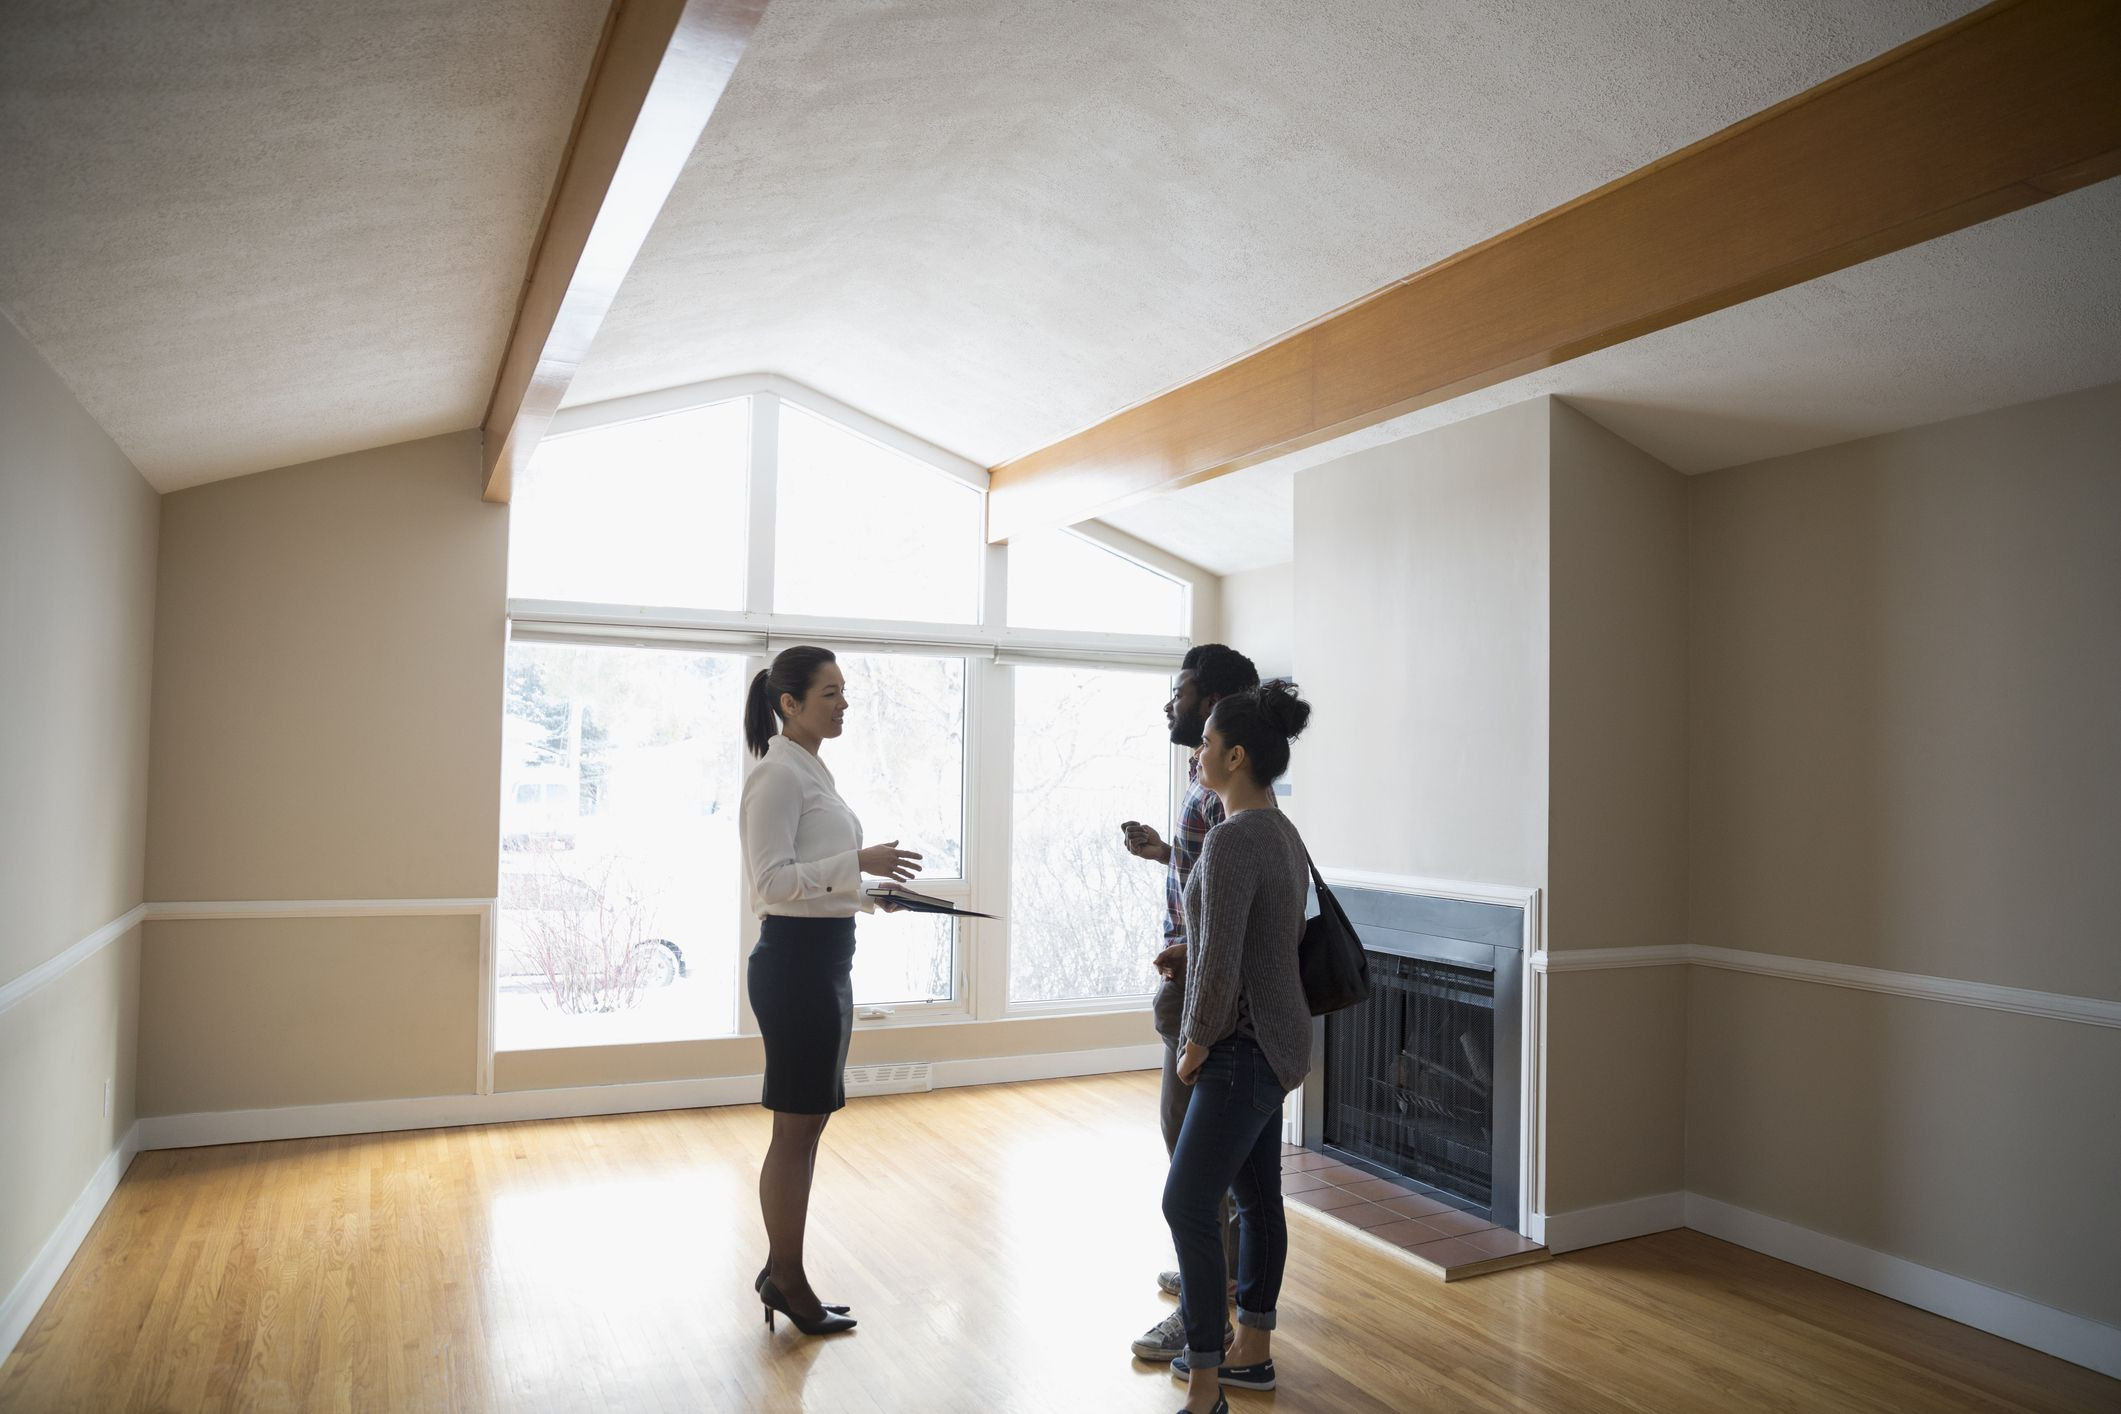 wholesale hardwood flooring portland oregon of can you save money with a discount real estate broker intended for gettyimages 944714886 5b60f52d46e0fb0050e6dfe1